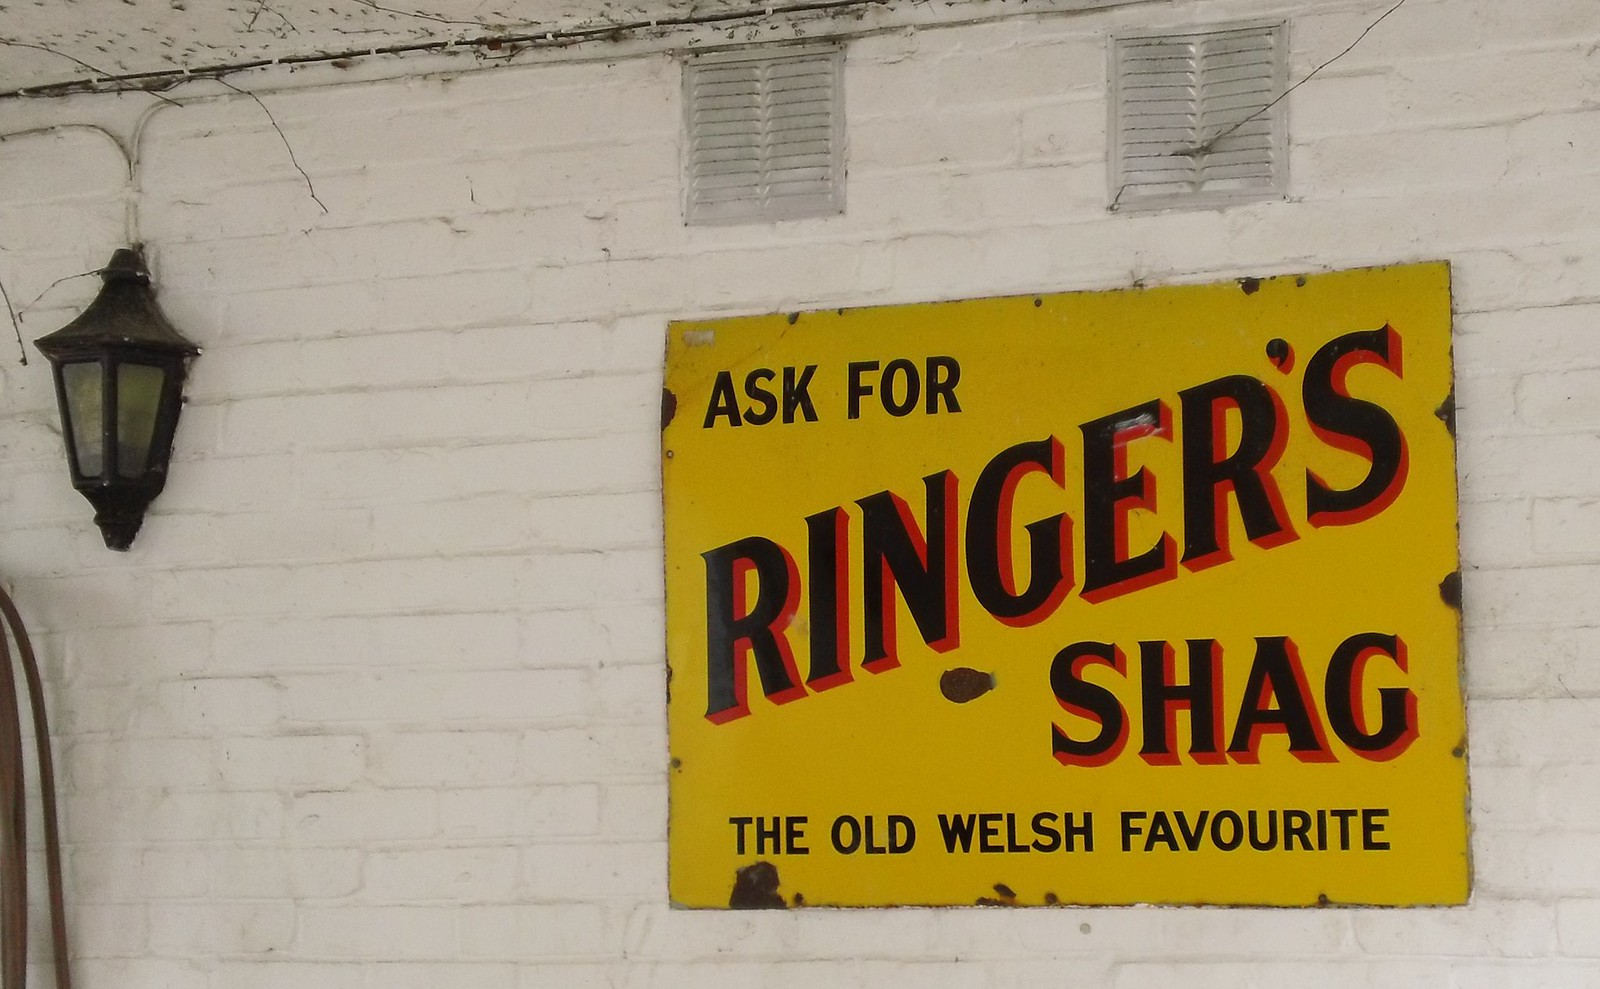 'Old Welsh Favourite' Don't ask! Rising Sun inn.